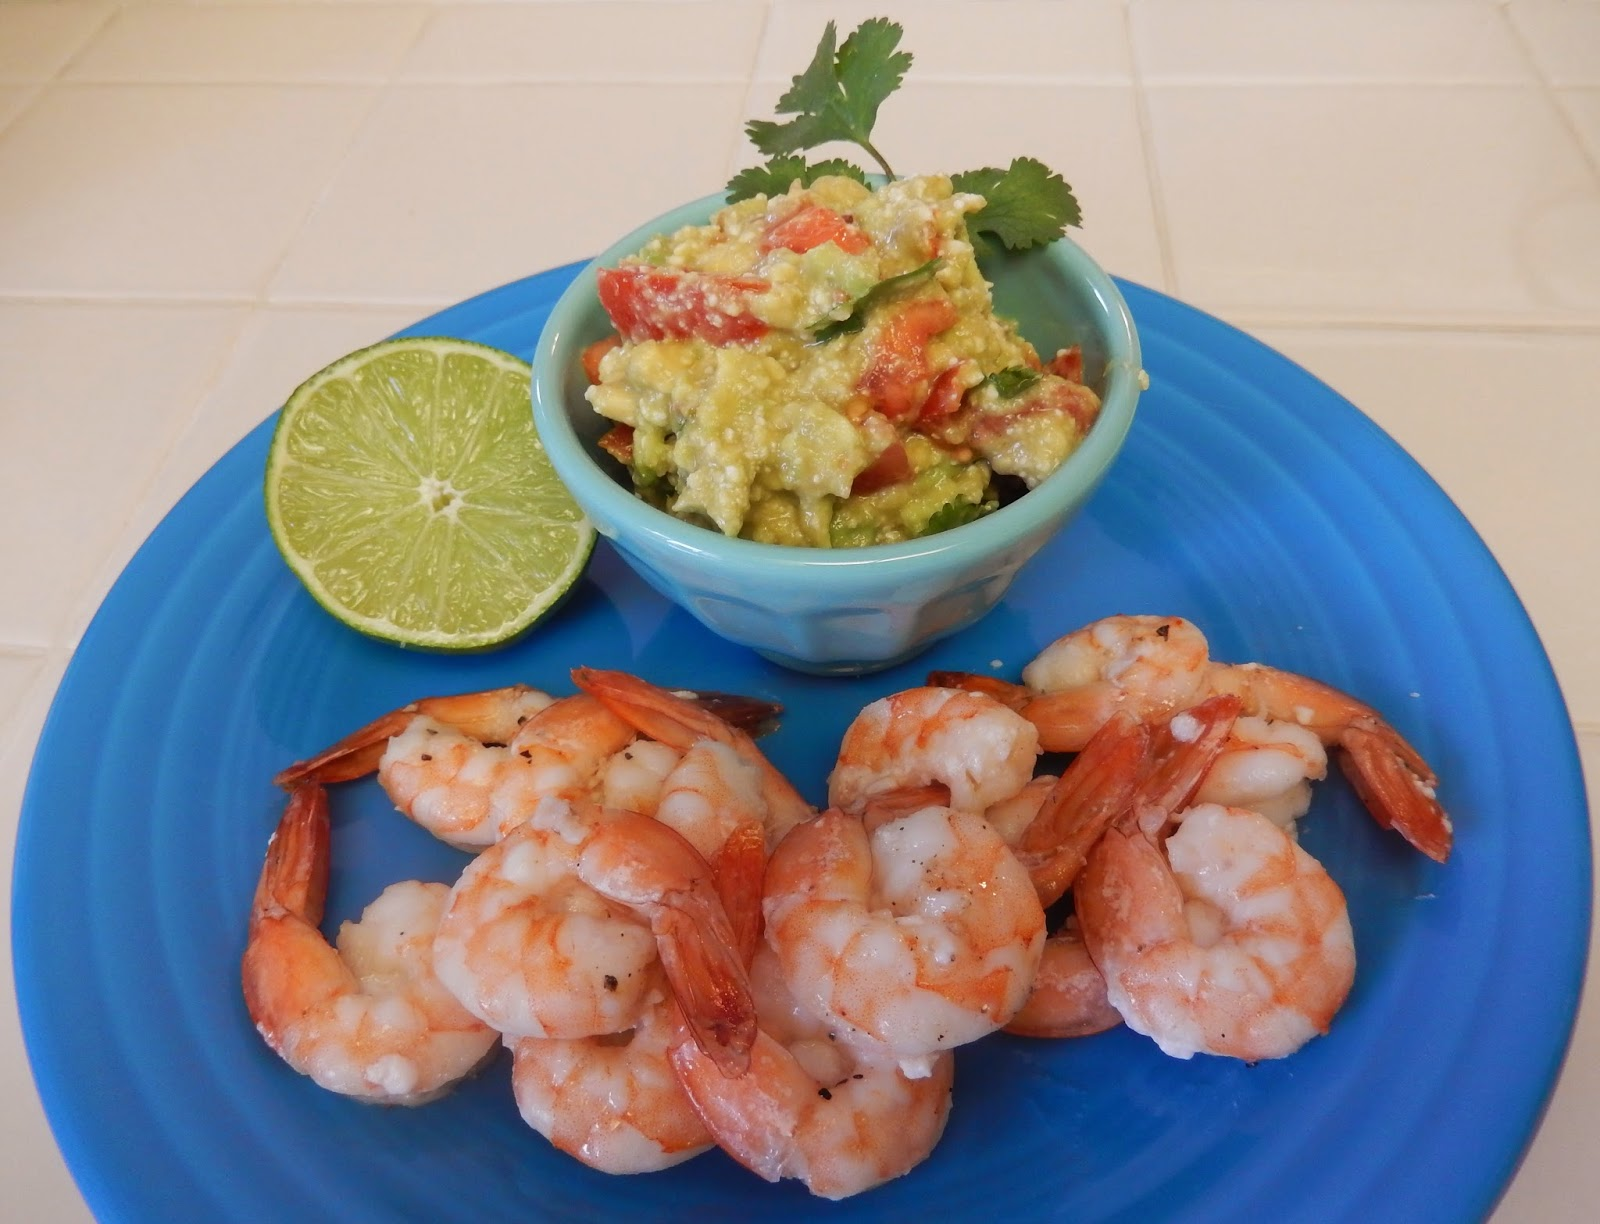 Roasted%2BShrimp%2BGuacamole%2BDip Weight Loss Recipes Post Weight Loss Surgery Menus: A day in my pouch